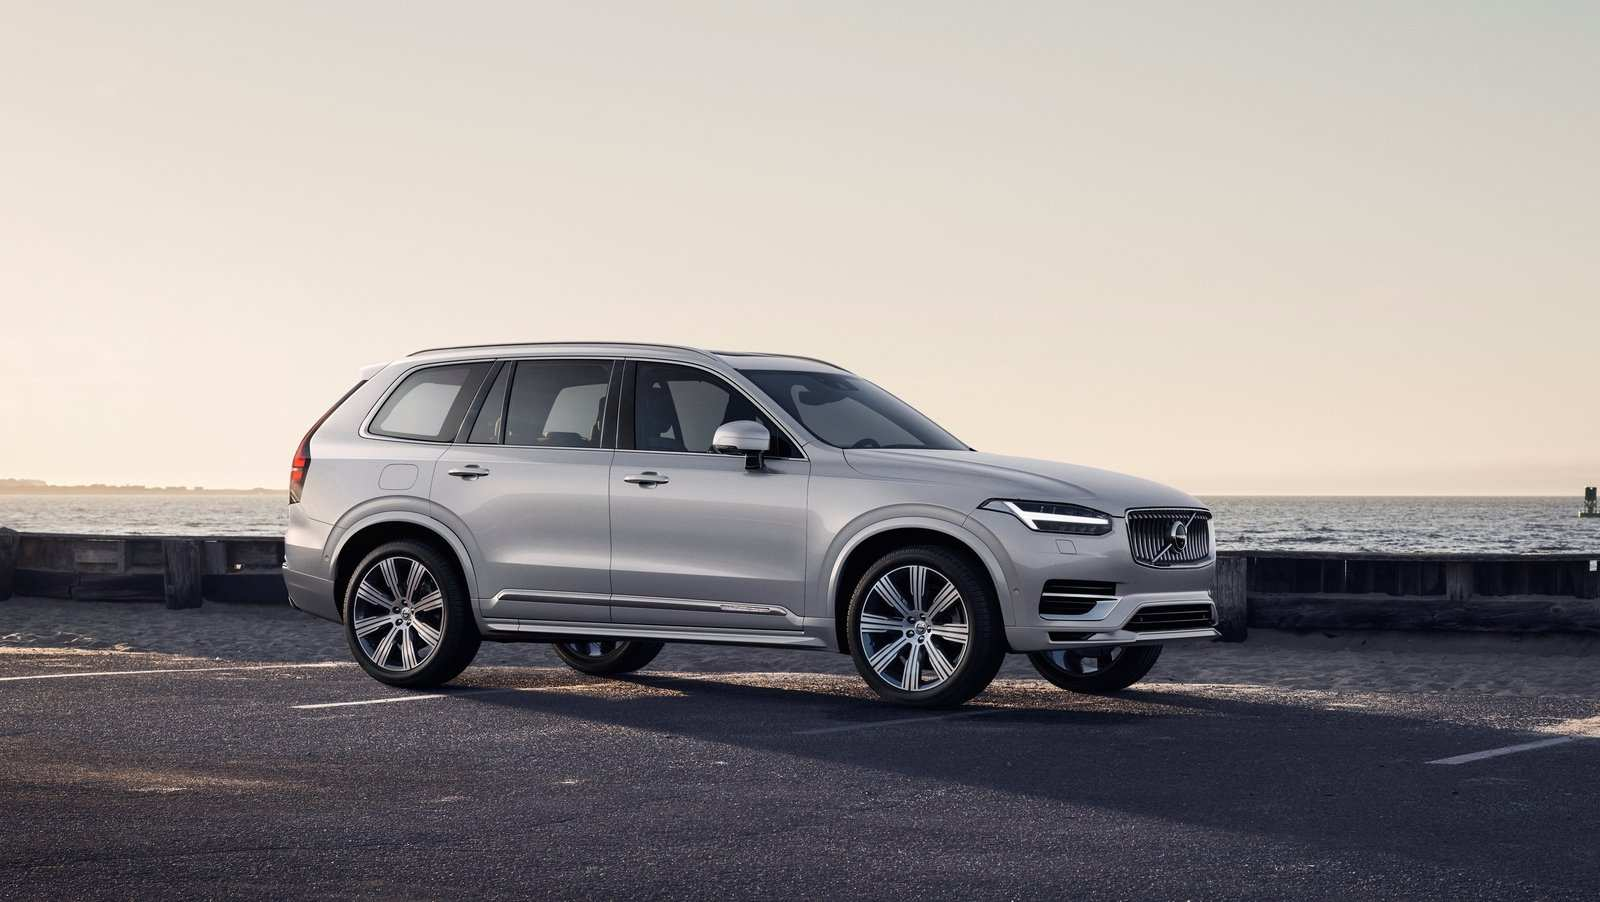 48 Concept of Volvo Xc90 Model Year 2020 Pictures for Volvo Xc90 Model Year 2020